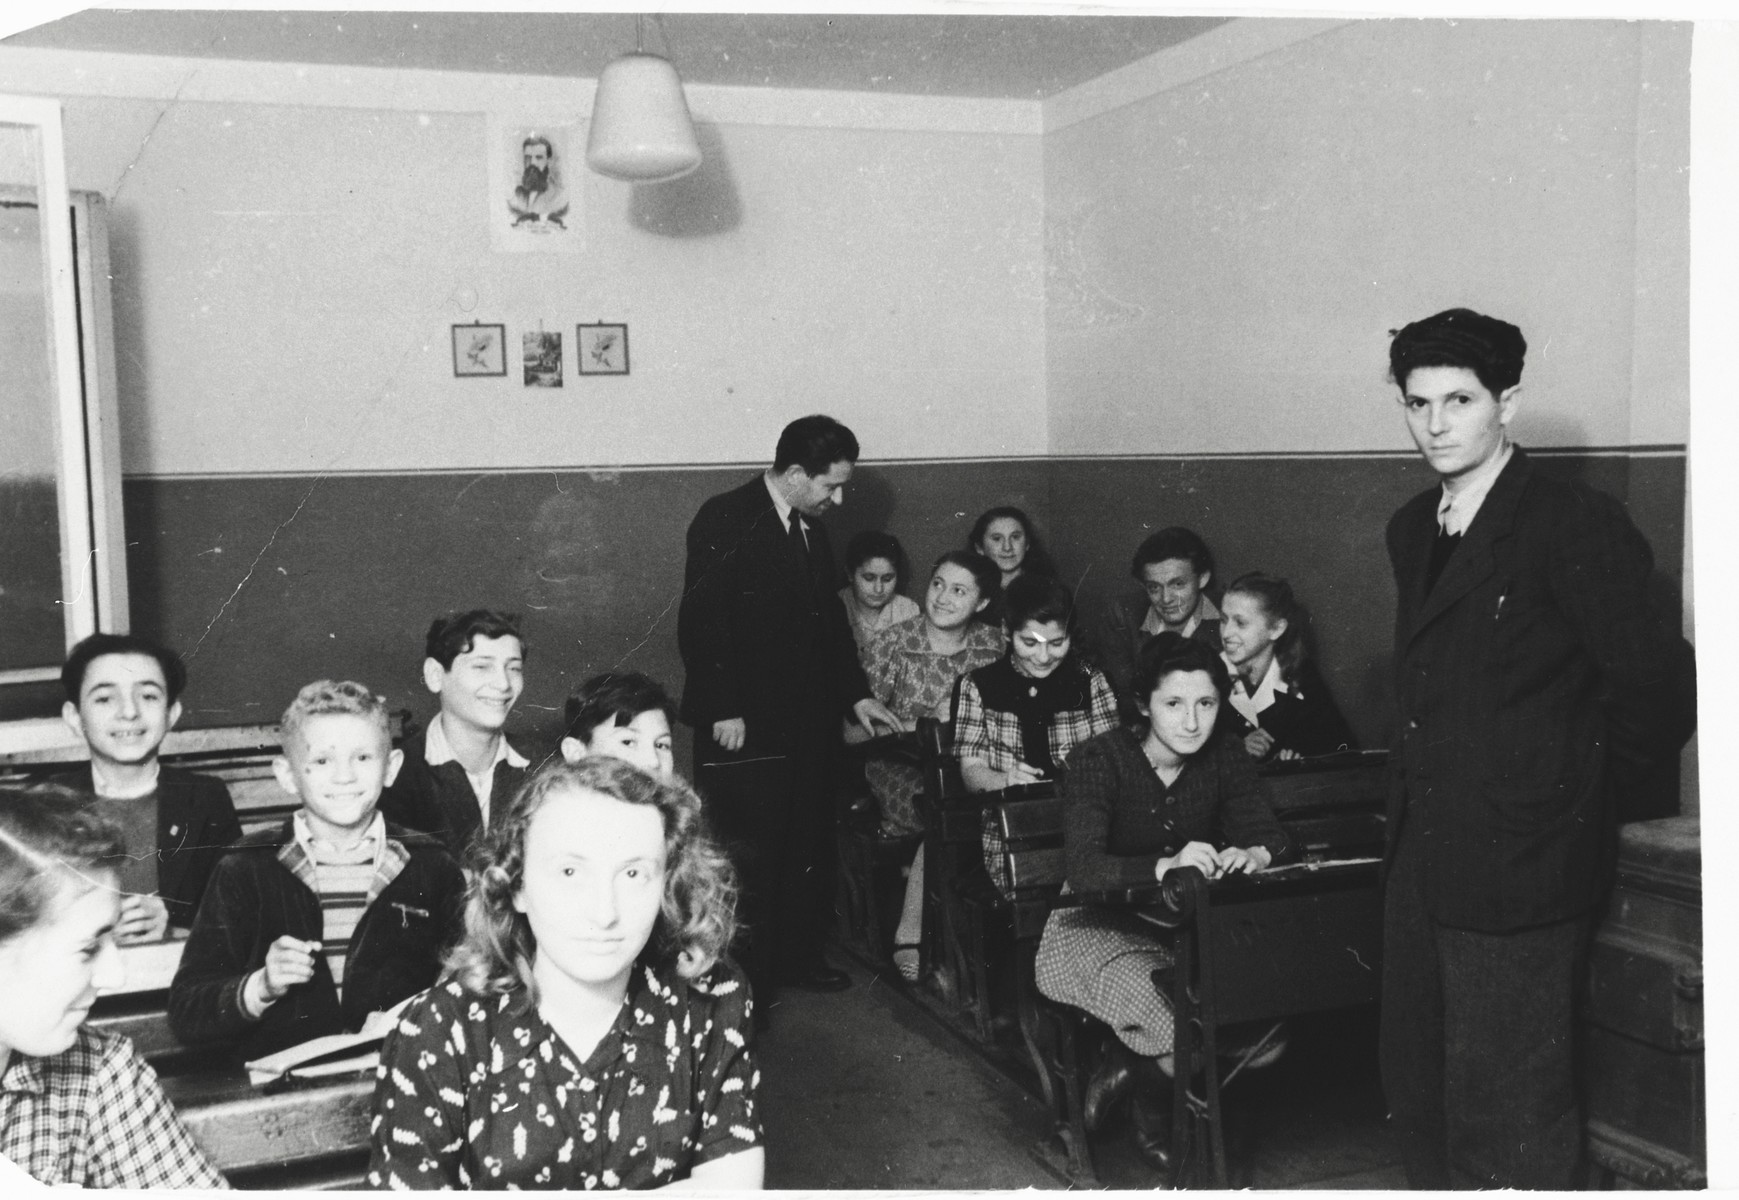 Children studying in a classroom in the Zeilsheim children's center.  Szlomo Waks is pictured in the second row, on the left.